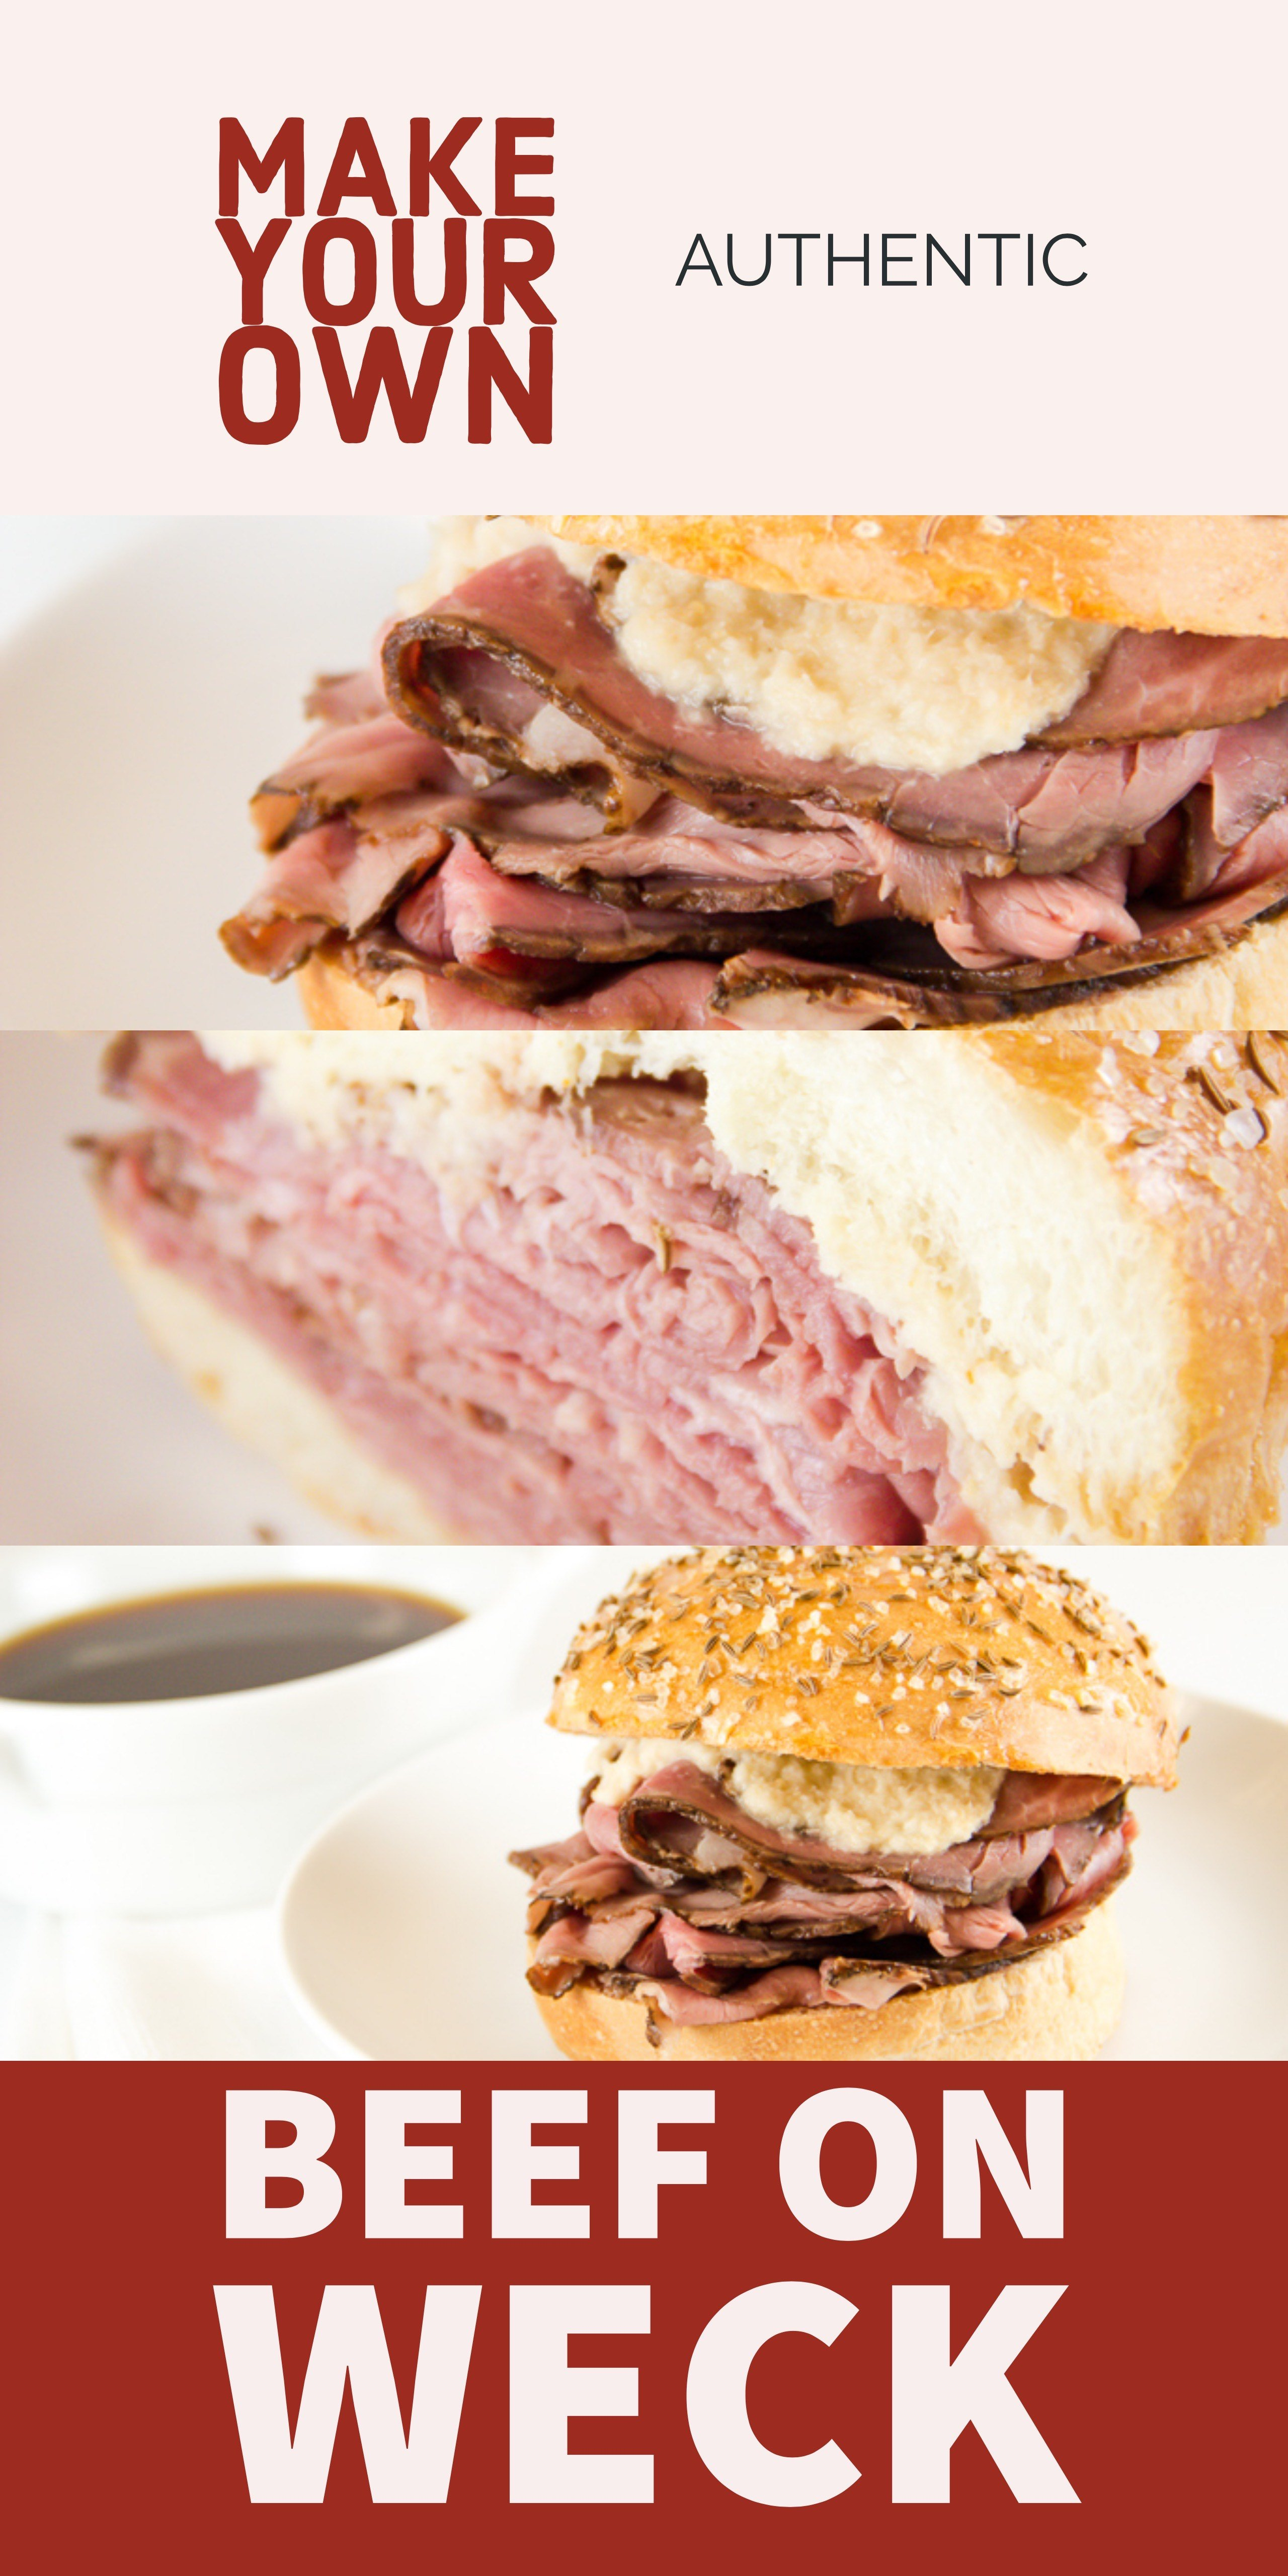 Make Your Own Beef on Weck Sandwich